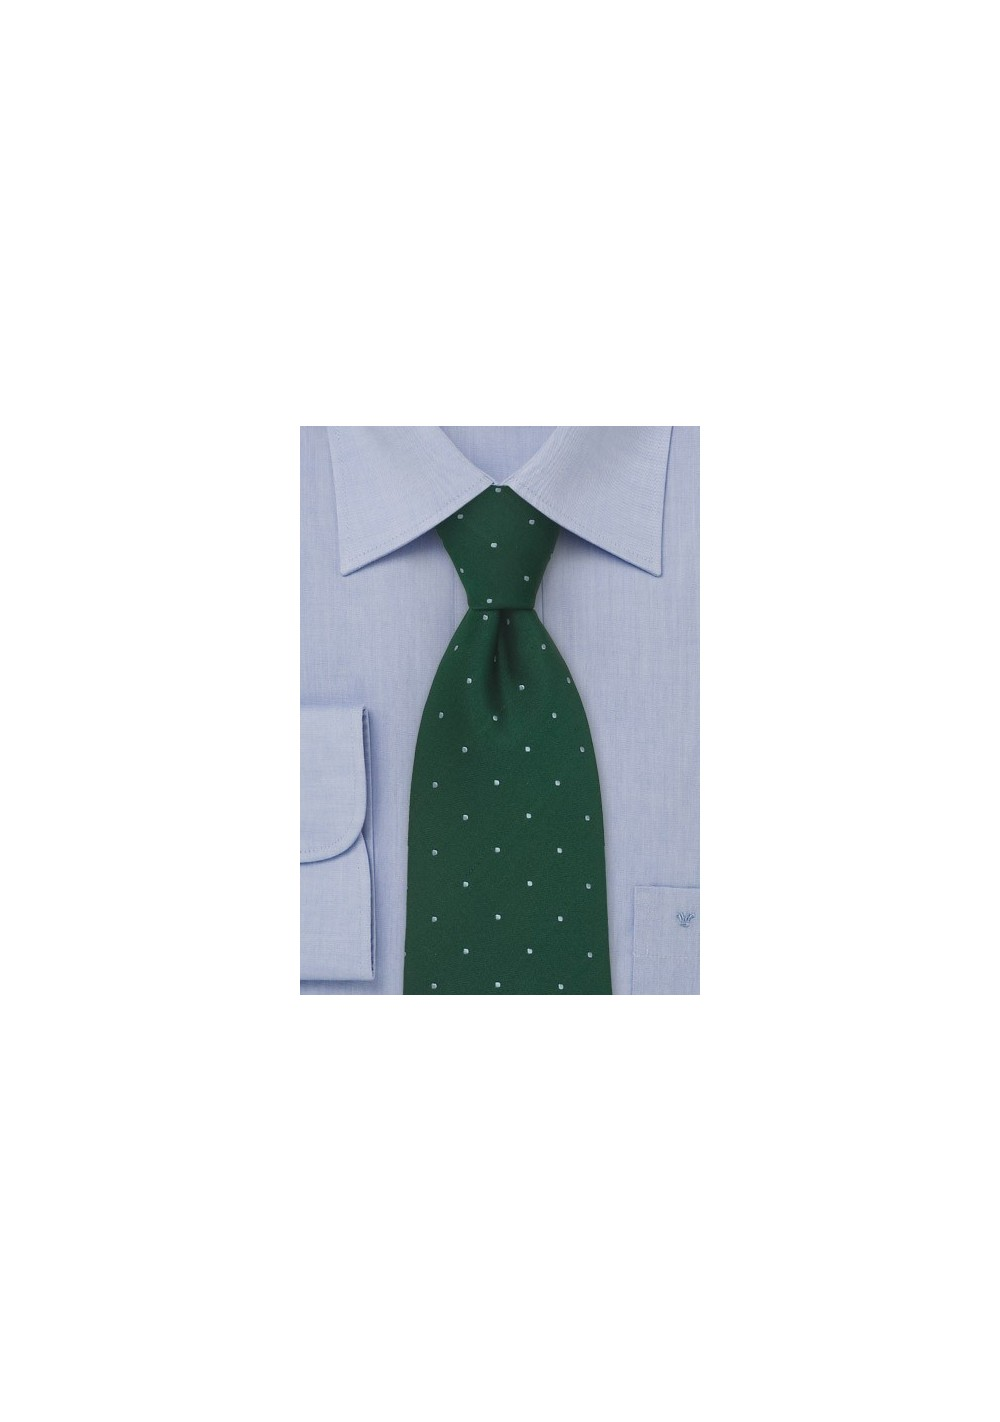 Polka Dot Silk Tie by Chevalier in Hunter Green and Light Blue